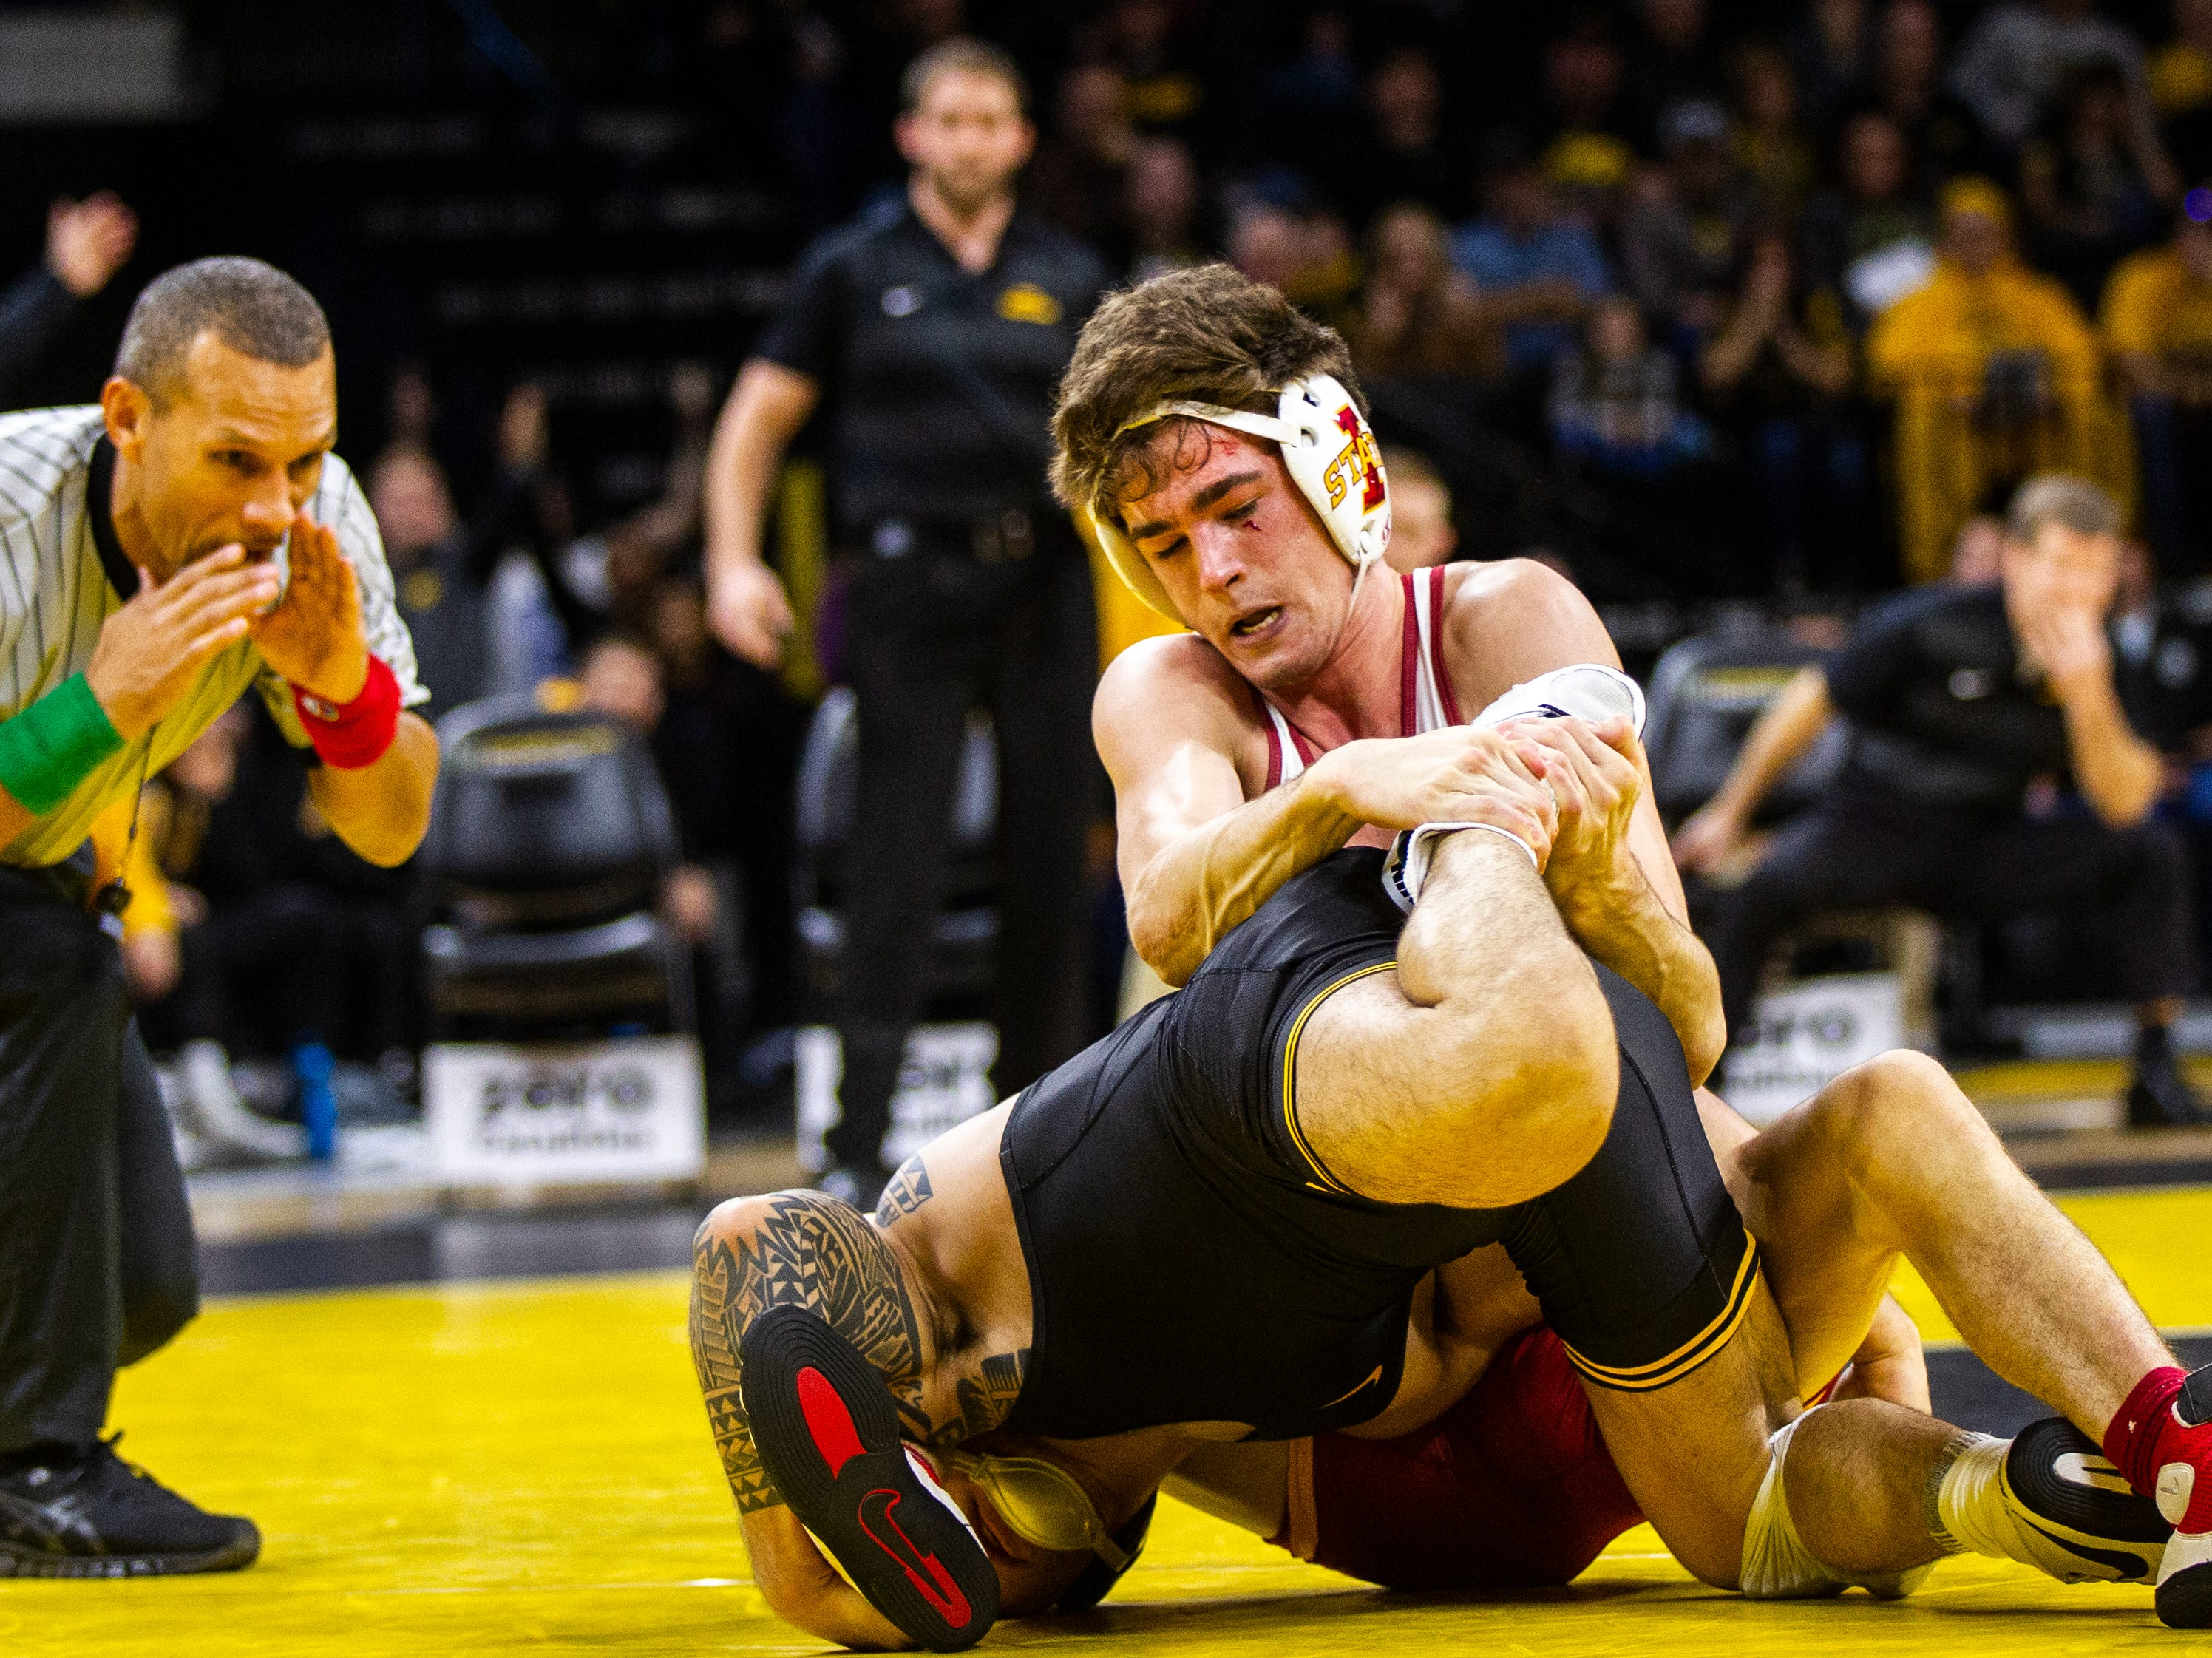 Iowa State's Jarrett Degen, top, wrestles Pat Lugo at 149 during a NCAA Cy-Hawk series wrestling dual on Saturday, Dec. 1, 2018, at Carver-Hawkeye Arena in Iowa City.